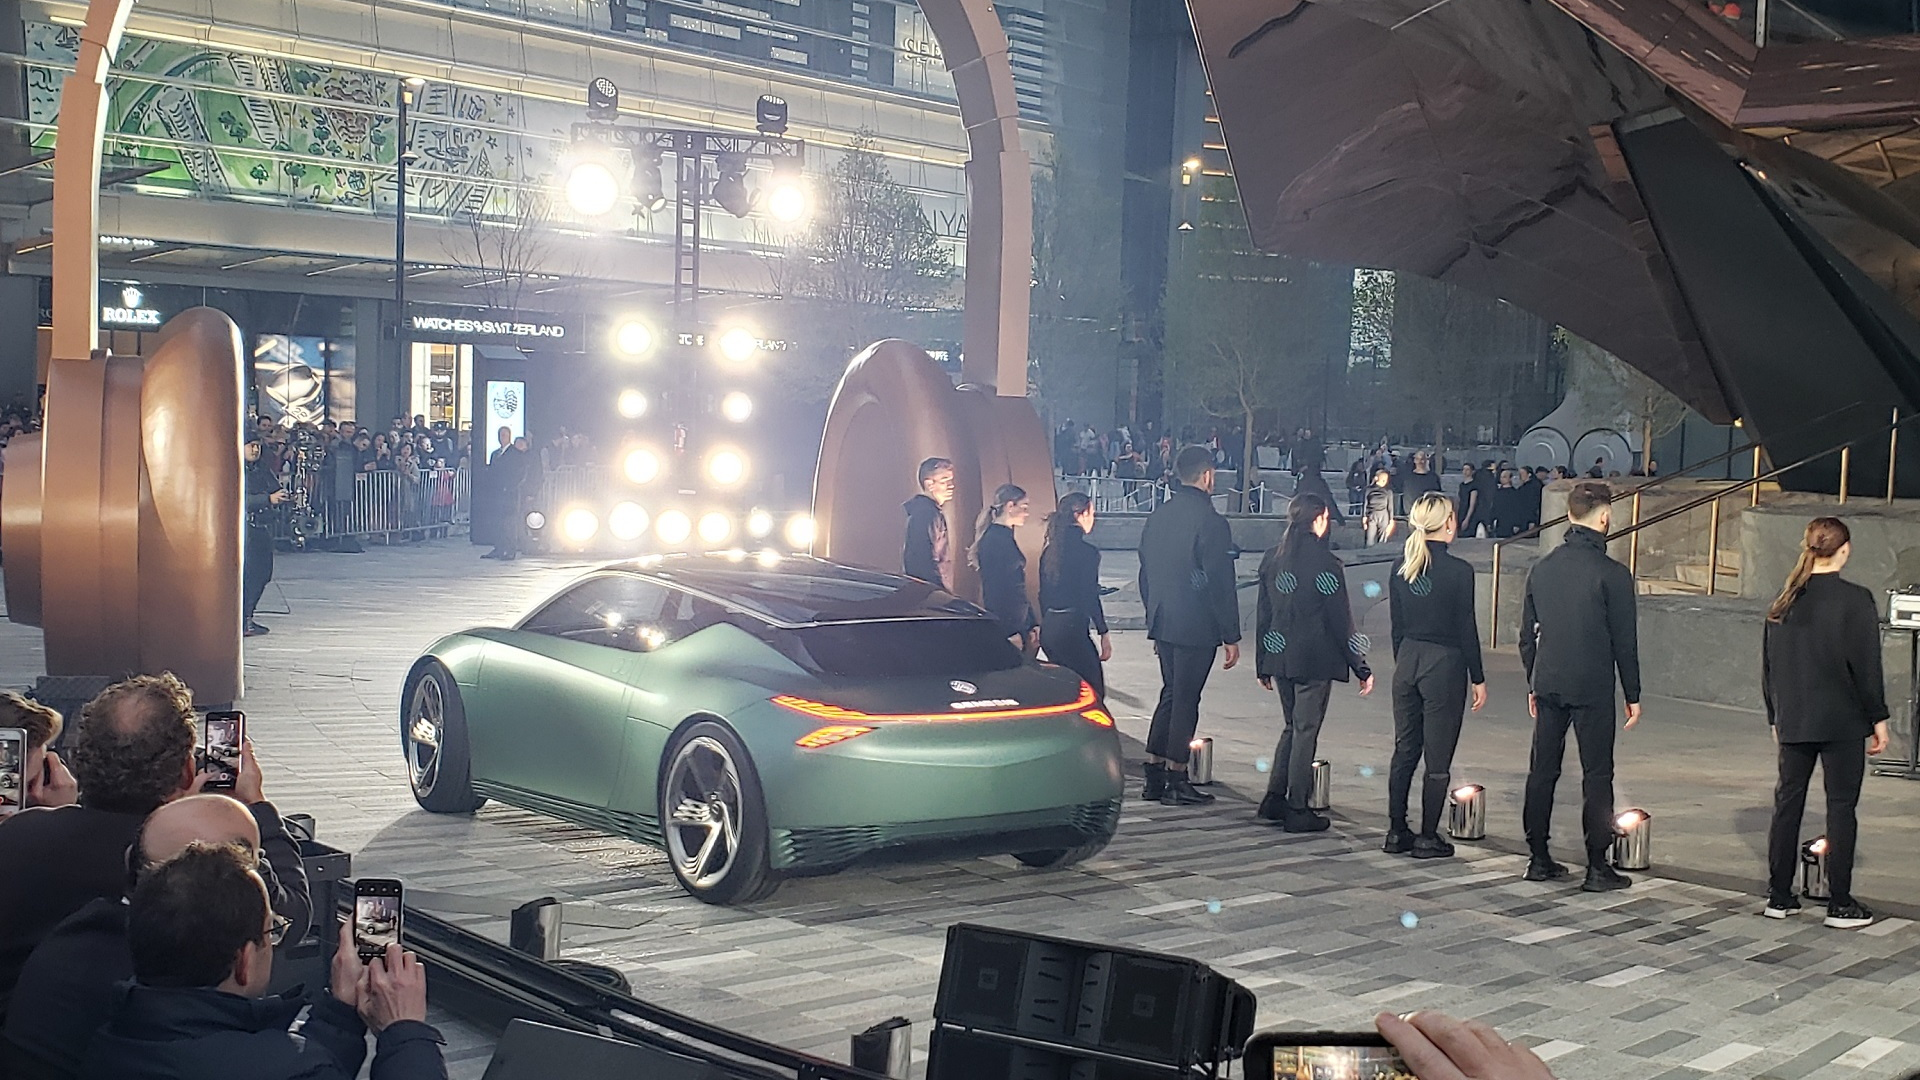 Genesis Mint Concept debut, Hudson Yards, NYC - 2019 New York auto show